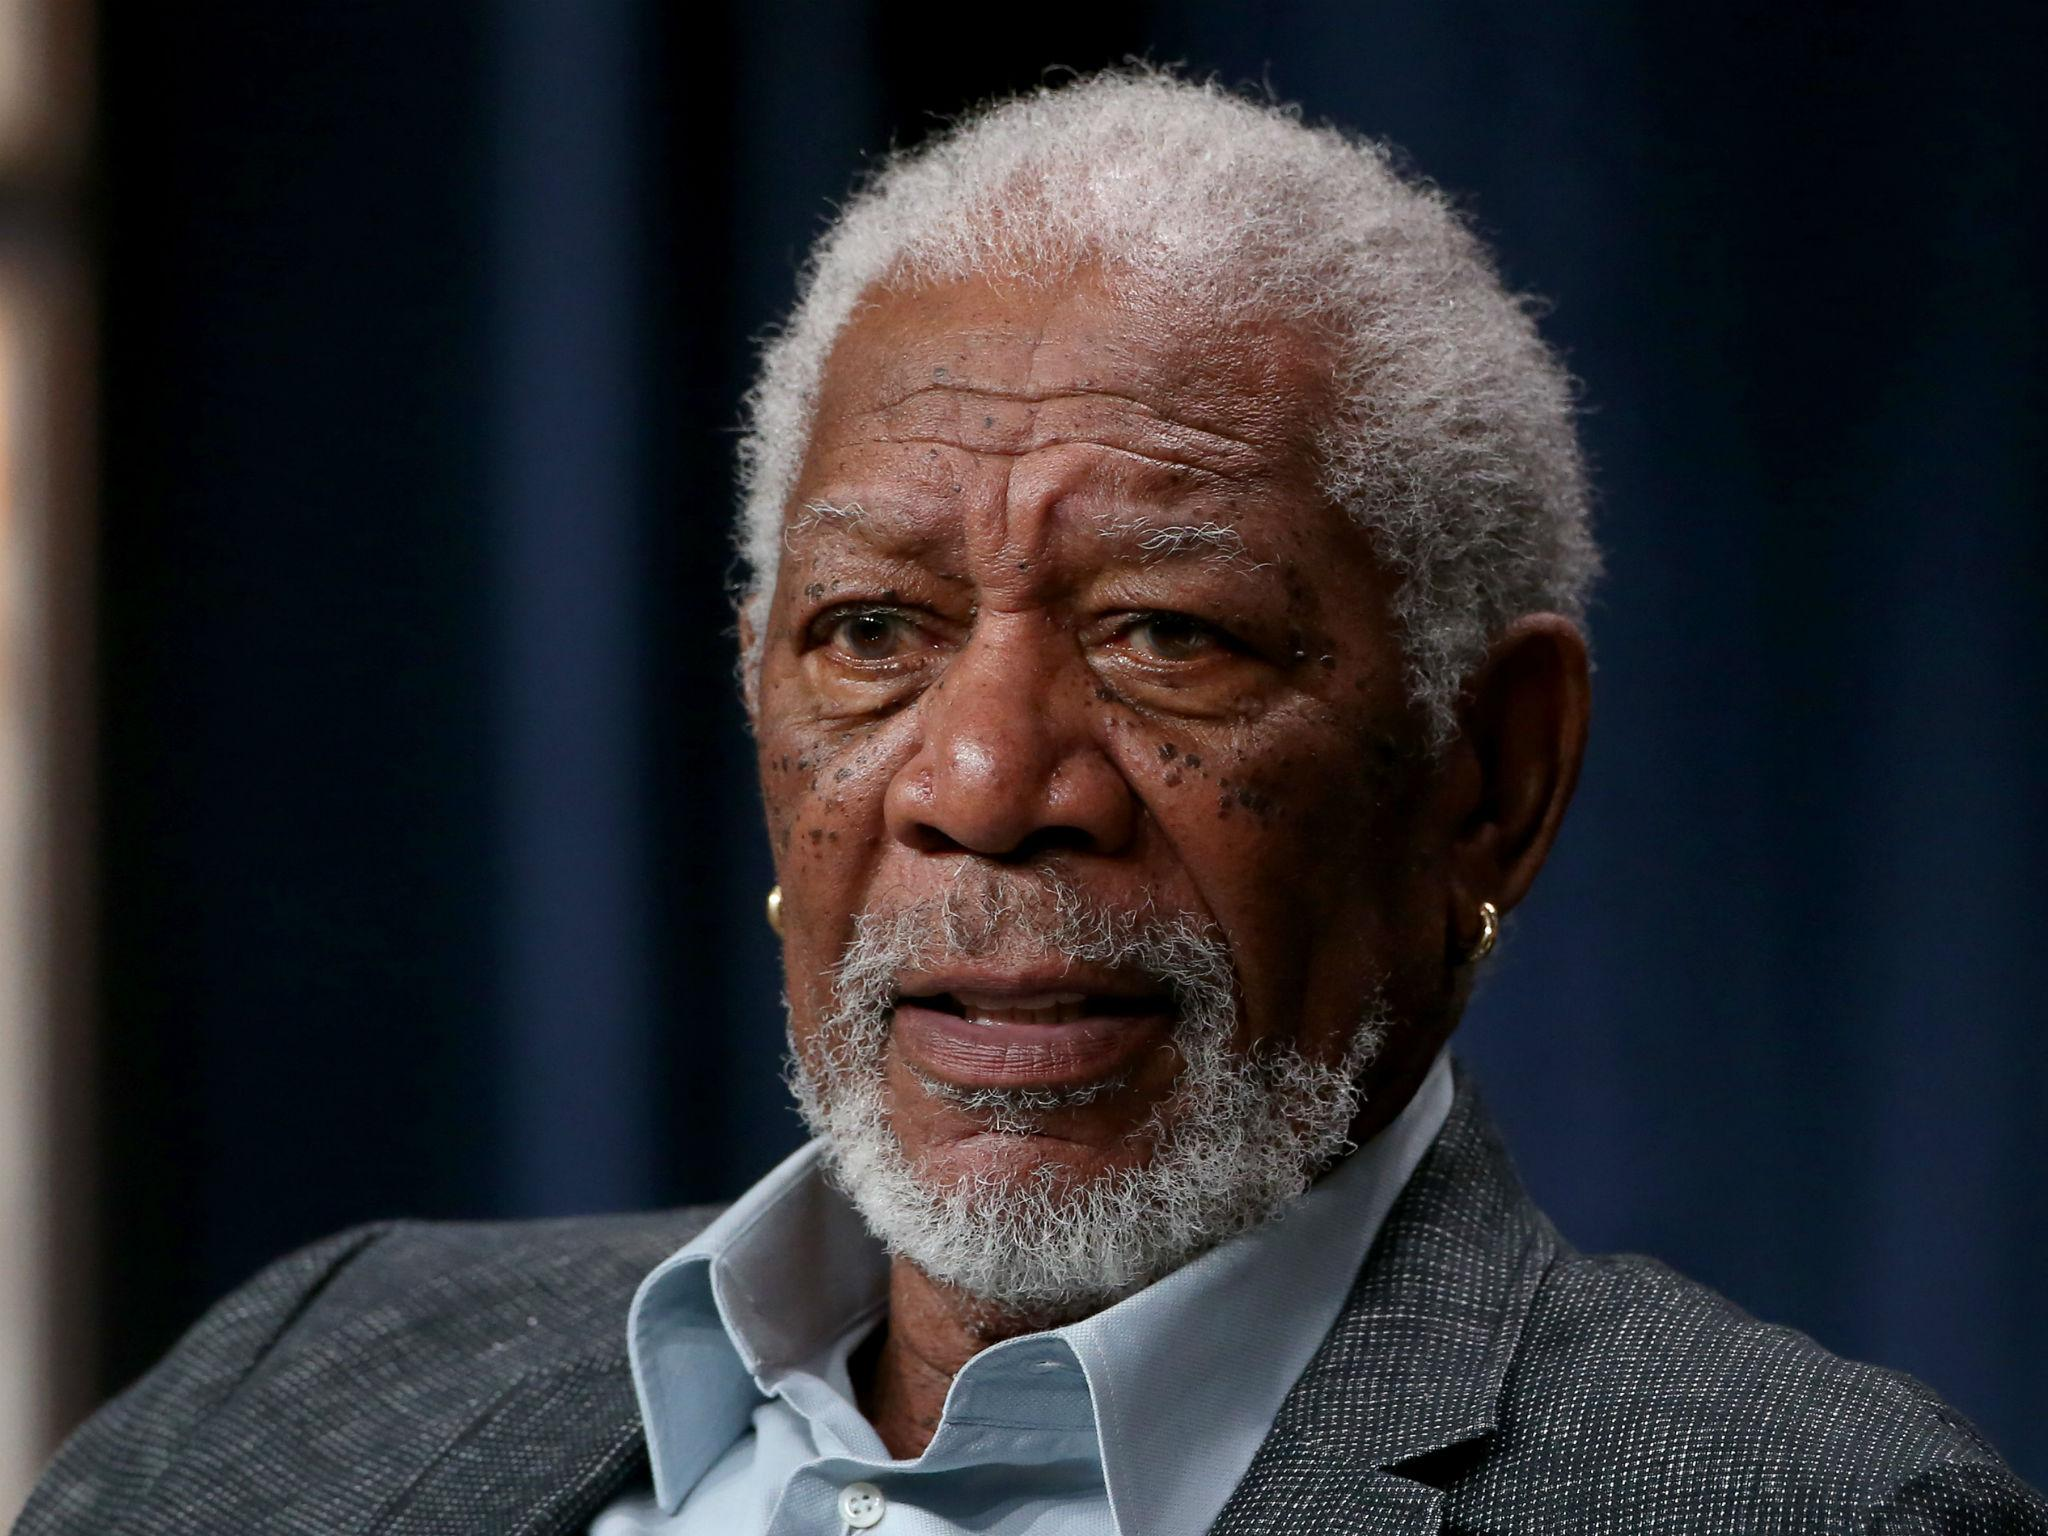 Morgan Freeman Issues Apology Over Sexual Harassment